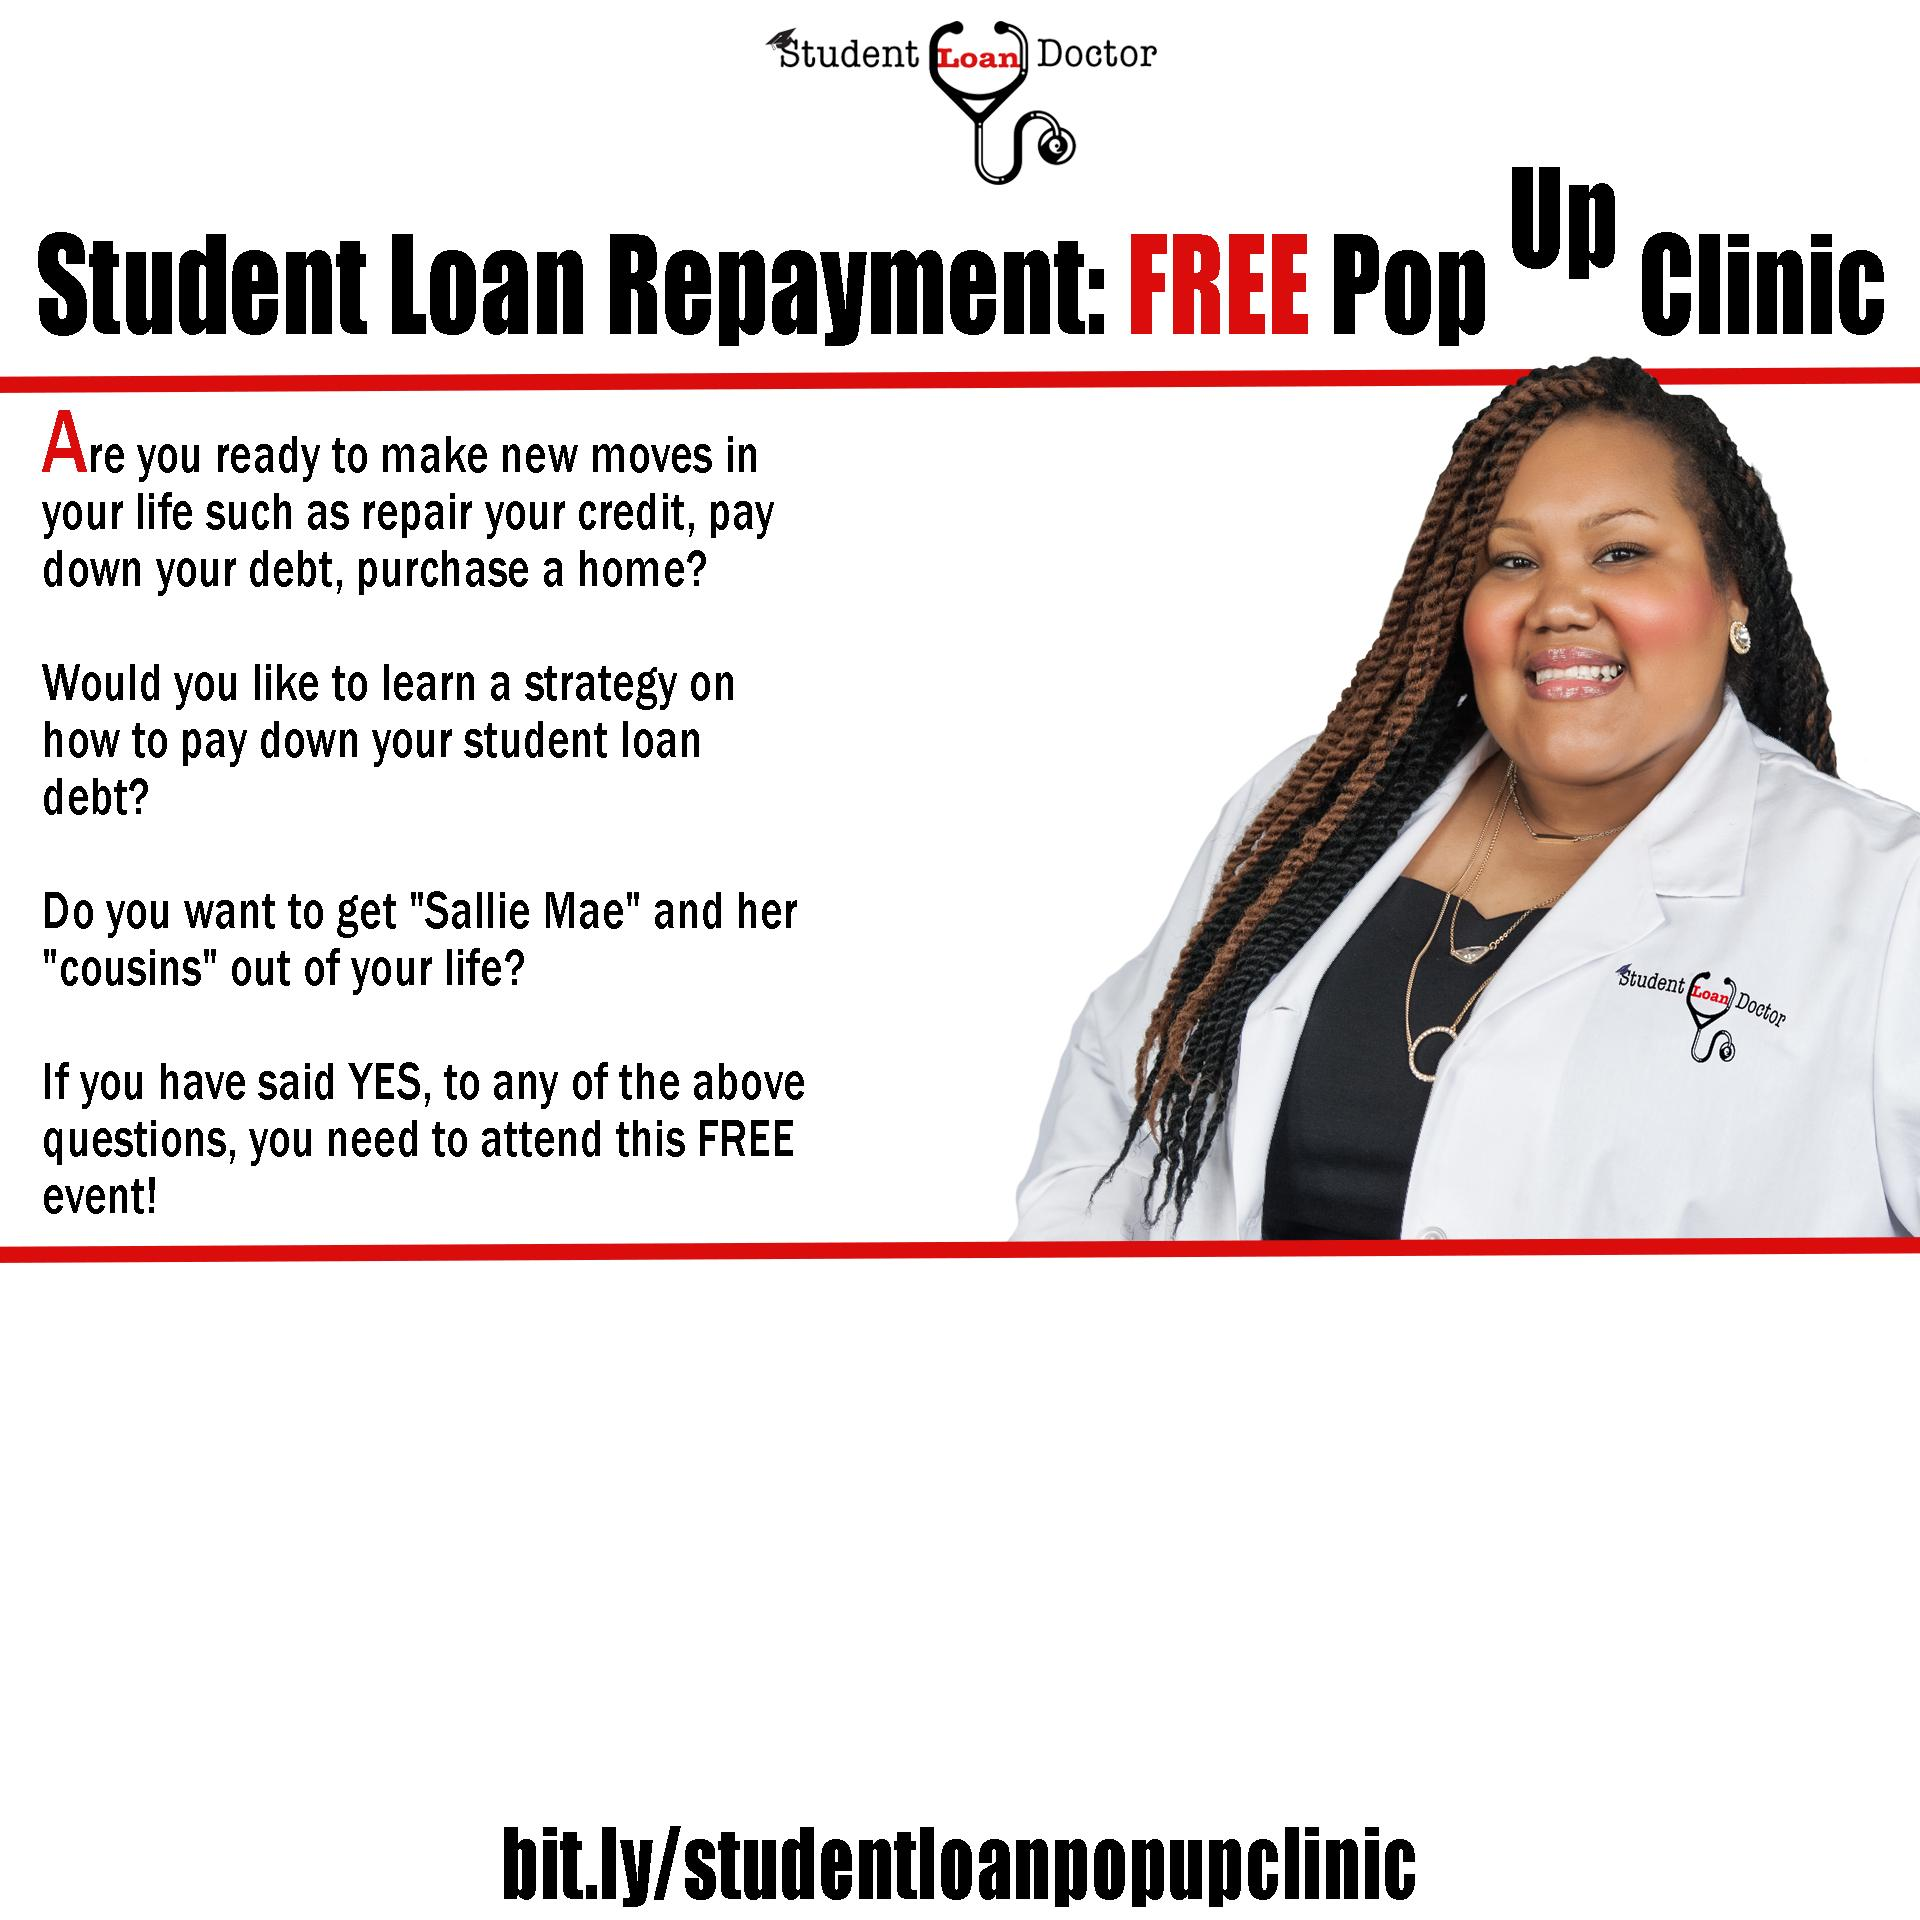 Free Student Loan Repayment Pop Up Clinic: Ph